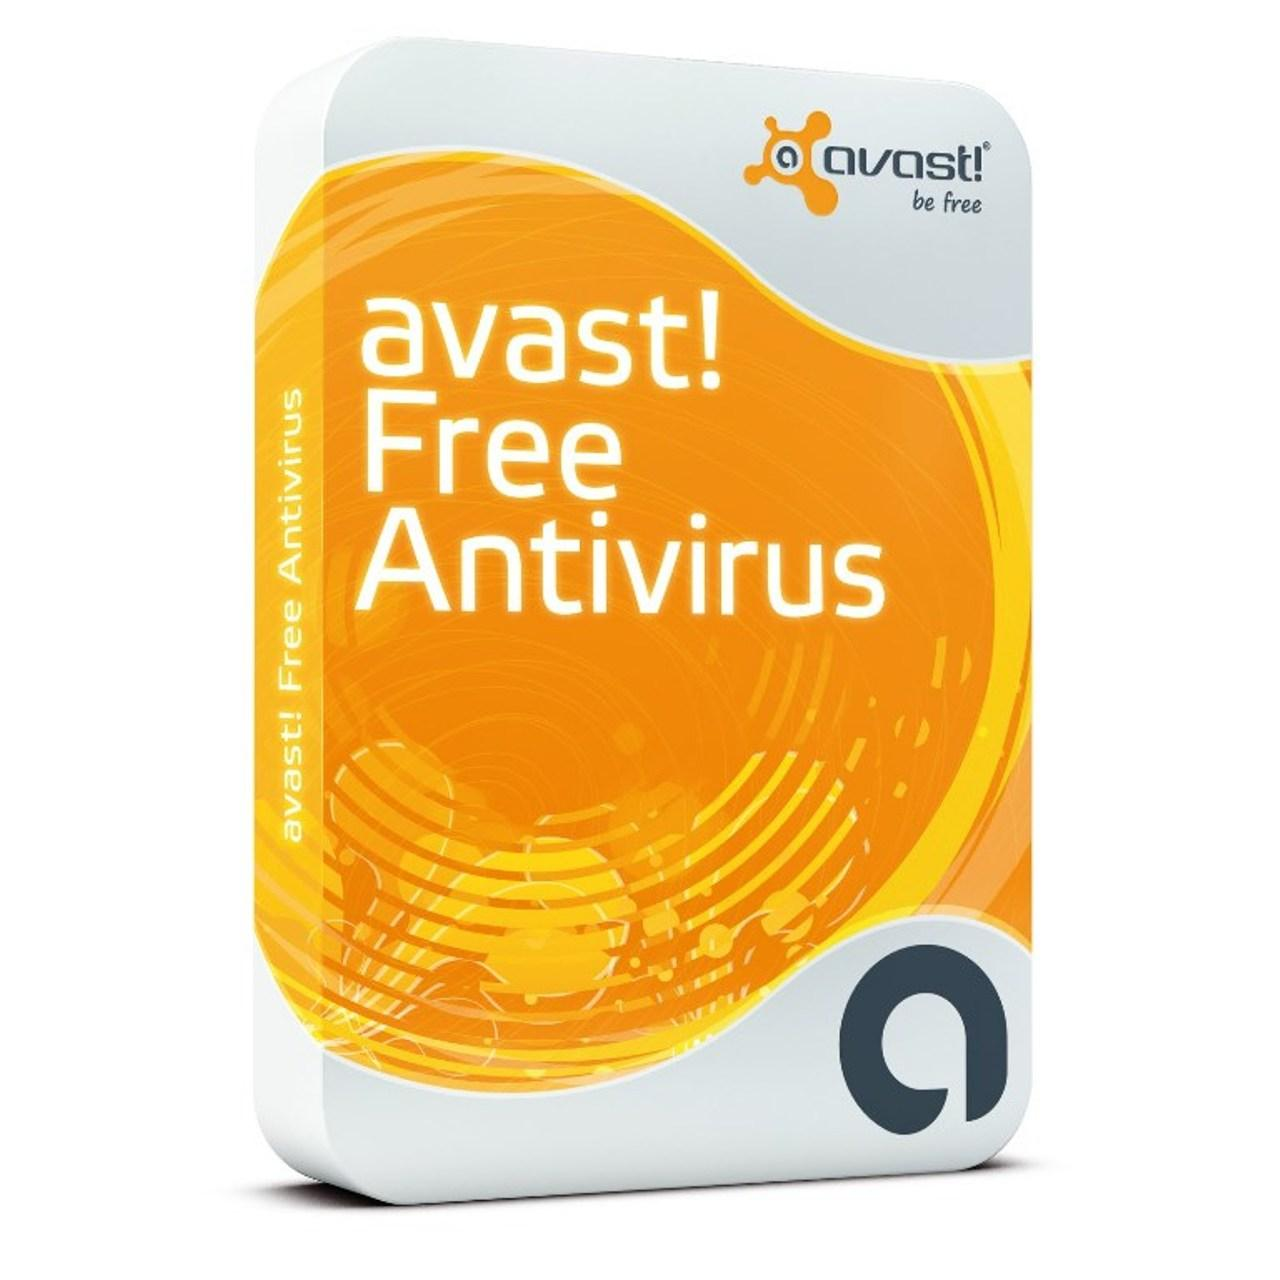 how to stop avast from scanning email